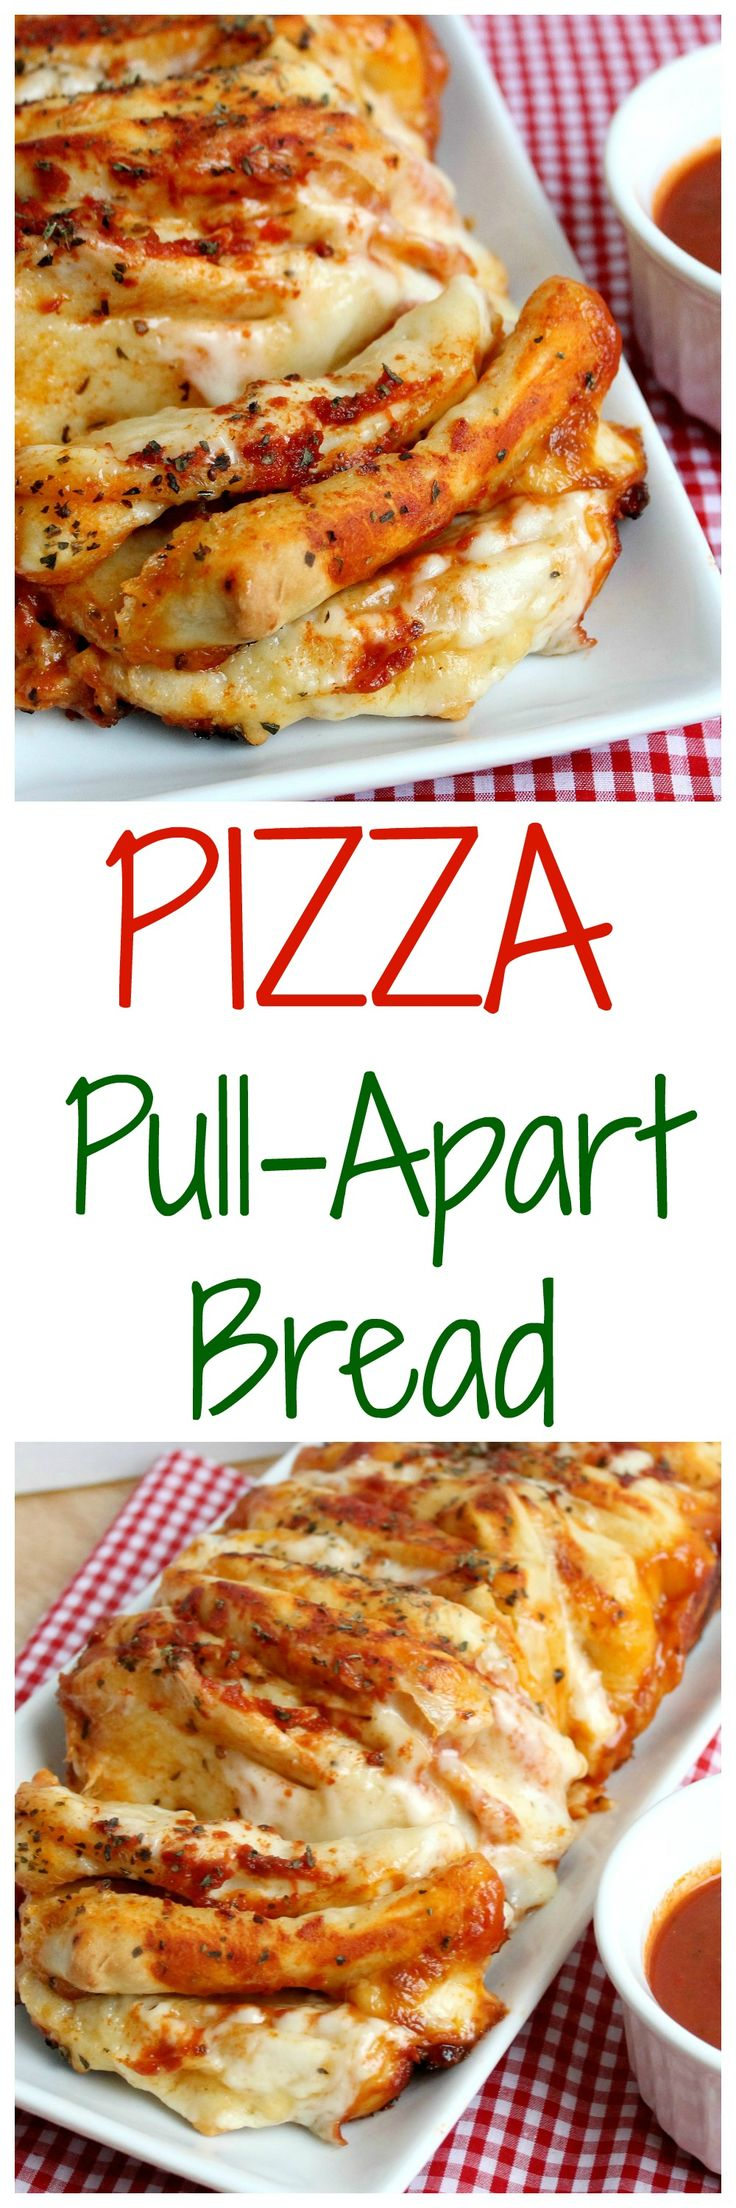 Pizza Pull Apart Bread - the perfect appetizer for any football party! | Stick a Fork in It